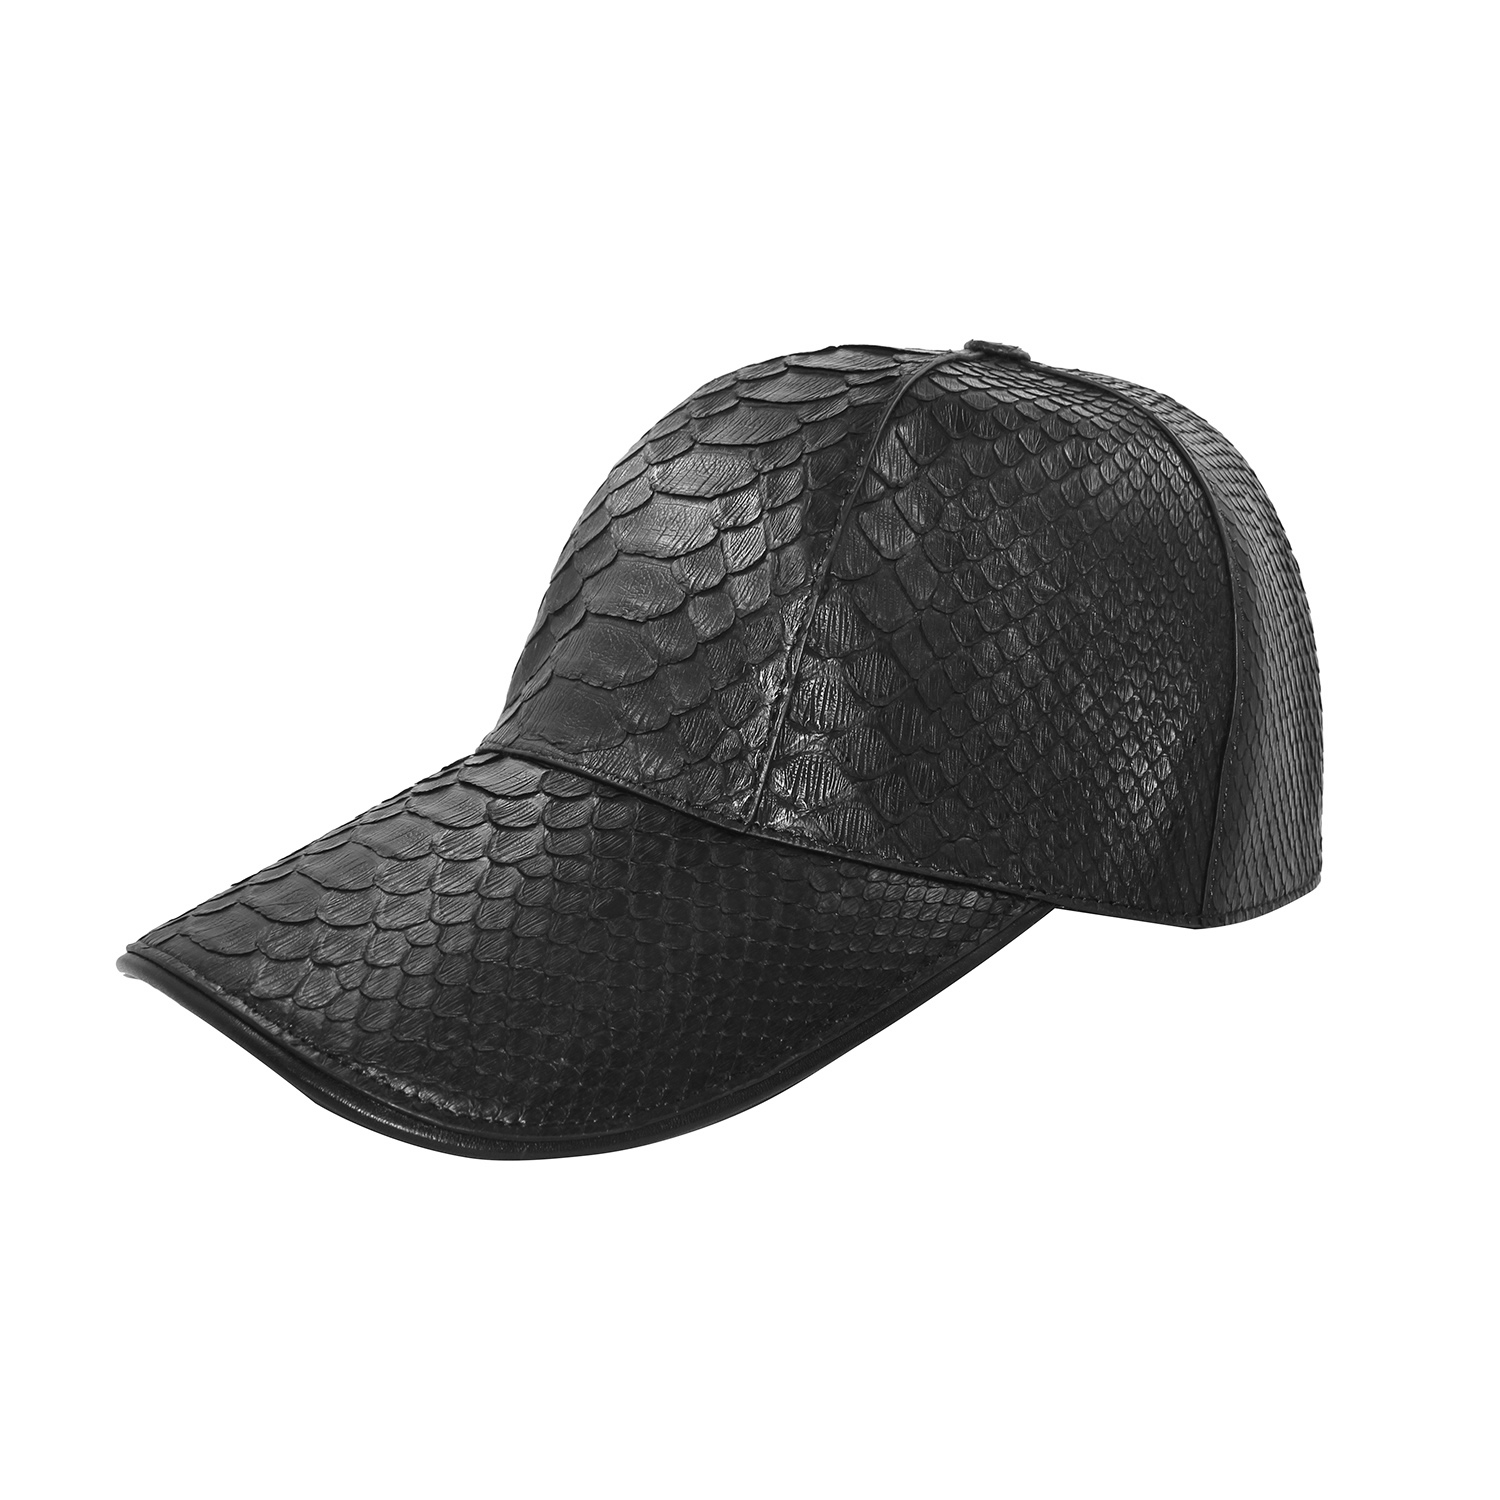 Genuine real Python snake skin  hats Cap Leather one size